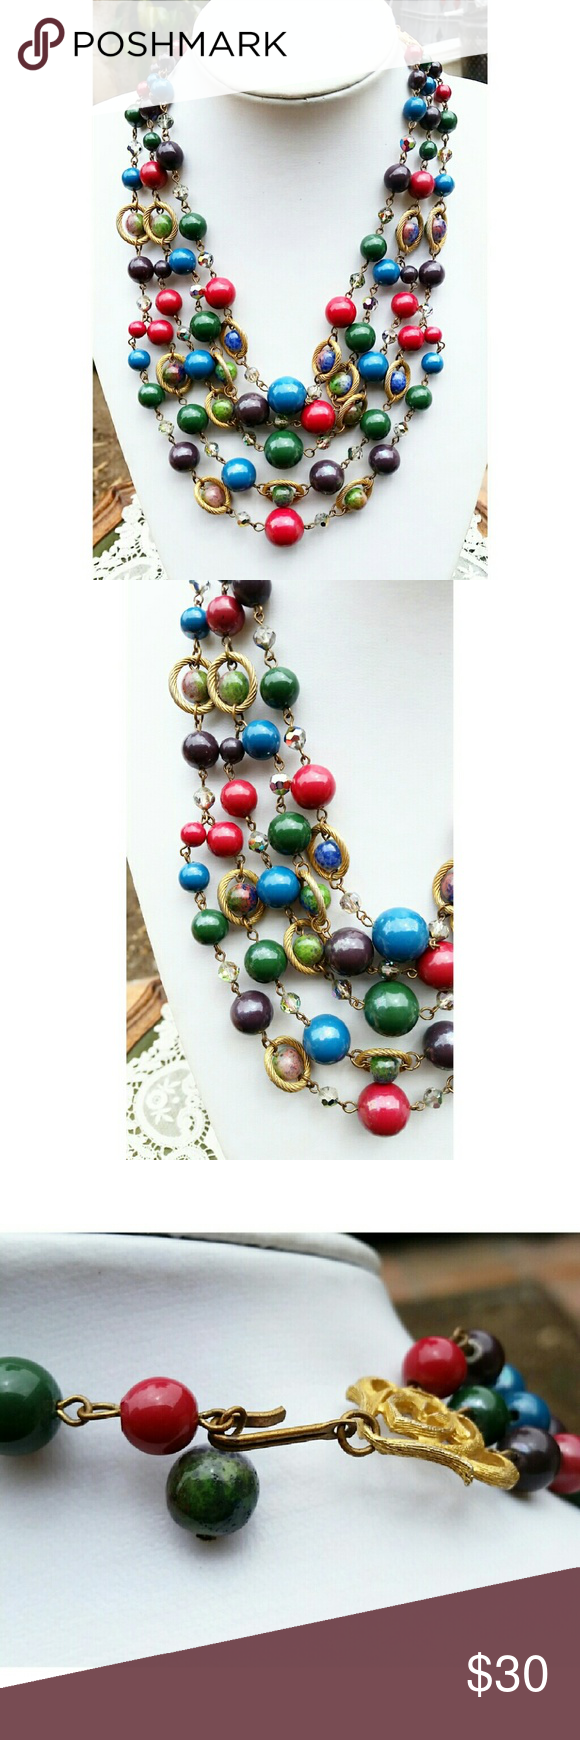 Vtg Art Deco Victorian Multistrand Beaded Necklace Beatific necklace in excellent vintage condition! Very colorful and vibrant, yet very Victorian. Has lucite beads, glass crystals, and gold tone metal. Has a hook and eye clasp closure. Stunning! Vintage Jewelry Necklaces